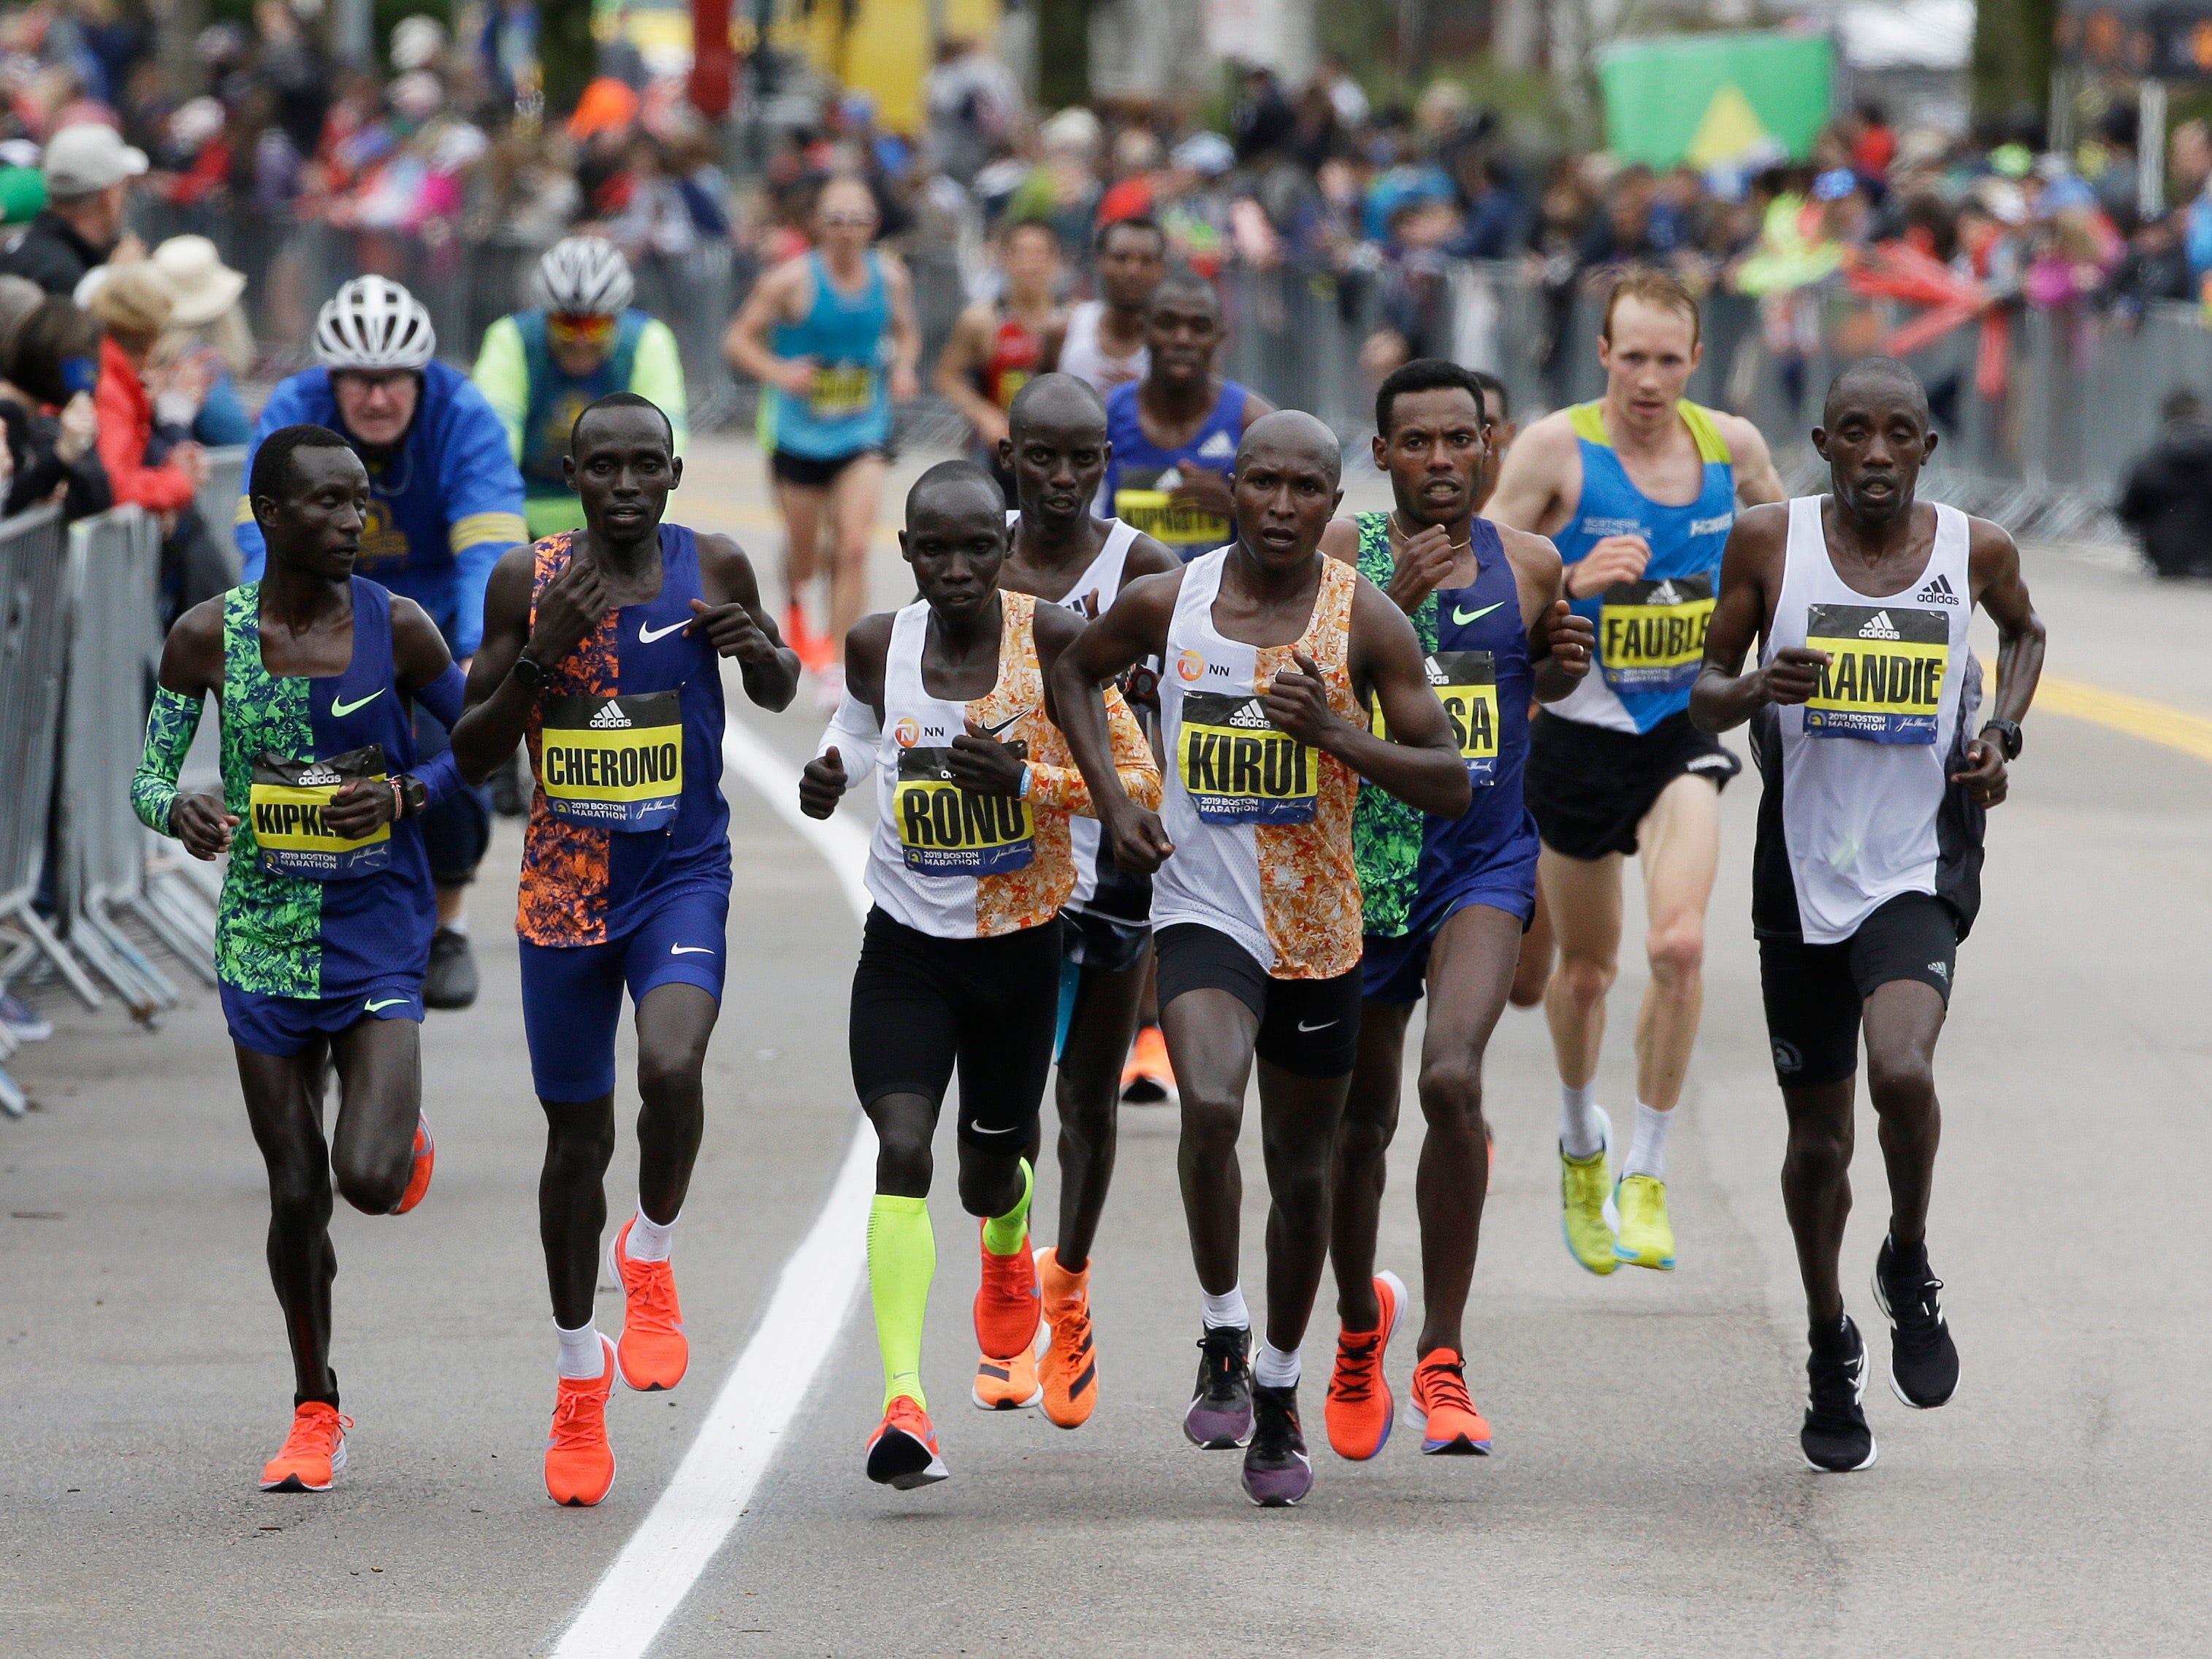 Geoffrey Kirui of Kenya leads the pack of runners up Heartbreak Hill during the 123rd Boston Marathon.